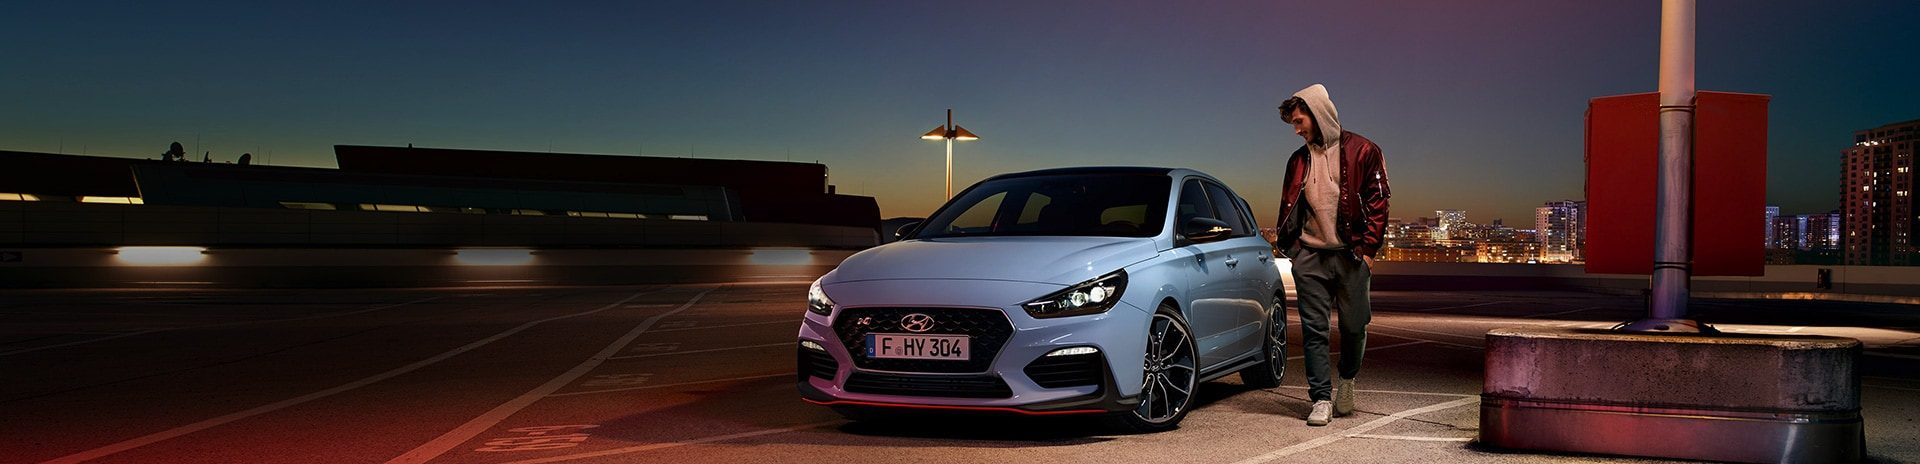 The All-New i30 N